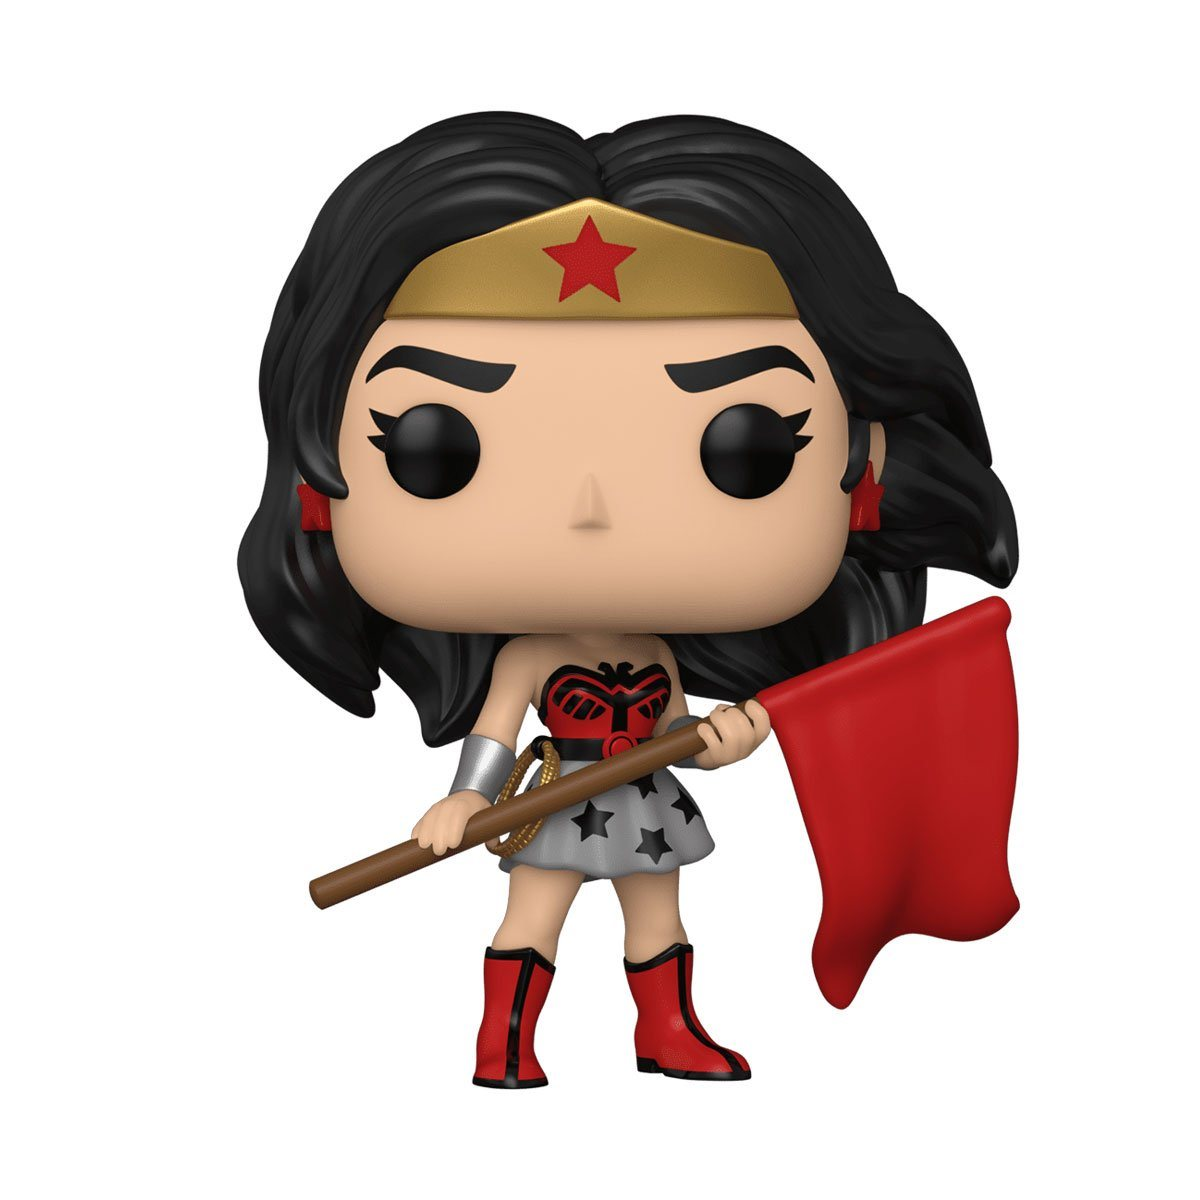 Wonder Woman (Superman: Red Son) #392 Wonder Woman 80th Anniversary Funko POP! Heroes [PRE-ORDER FOR ESTIMATED SUMMER 2021* DELIVERY] POP! Funko